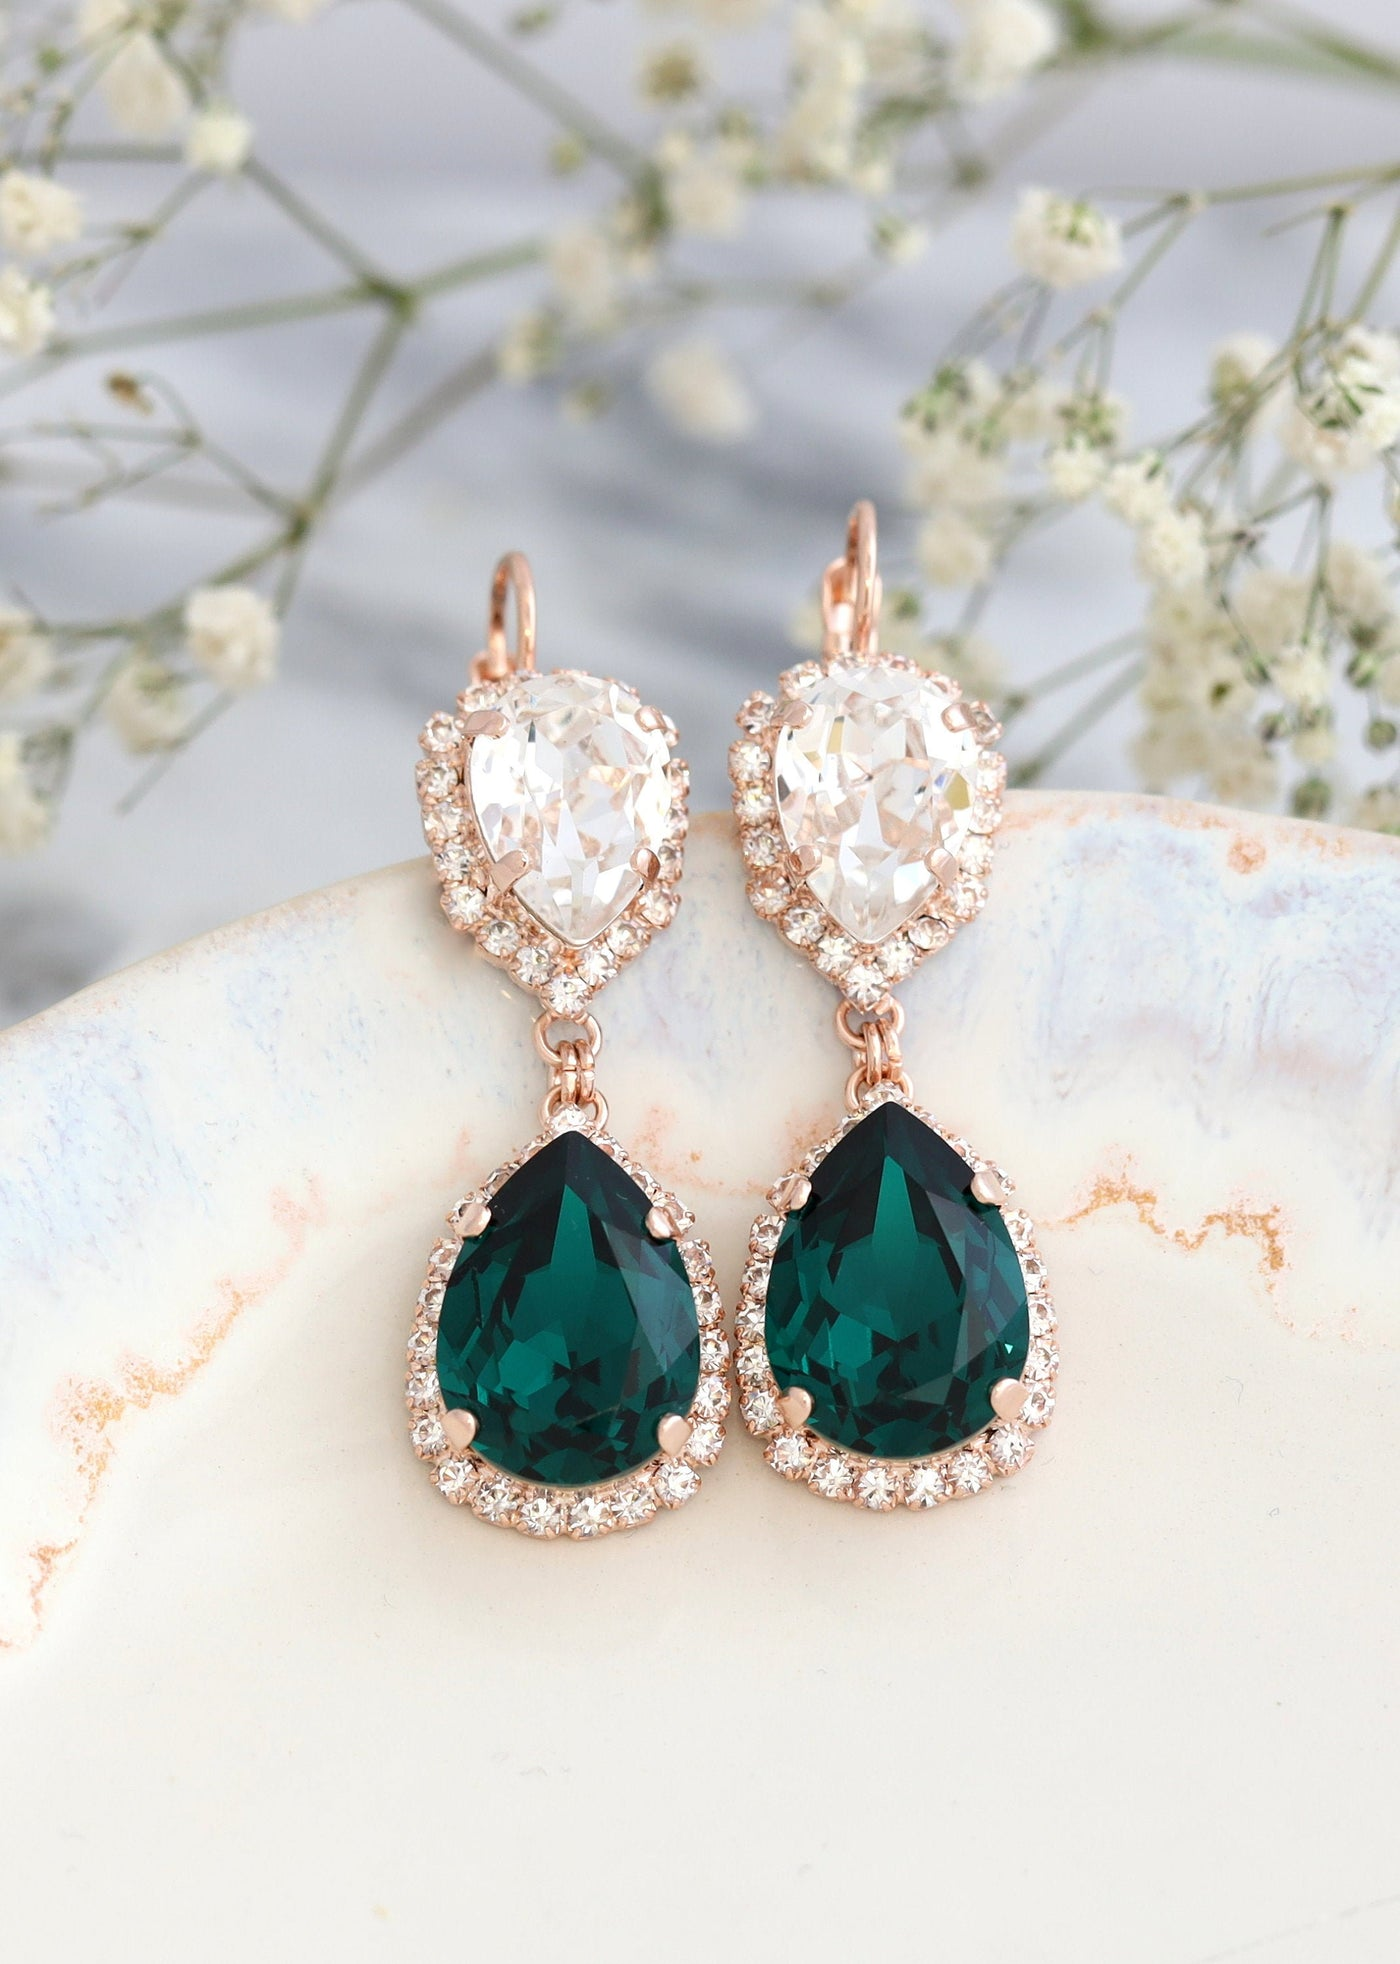 Emerald Chandelier Earrings, Bridal Emerald Drop Earrings, Green Emerald Chandelier Earrings, Emerald Crystal Swarovski Earrings.